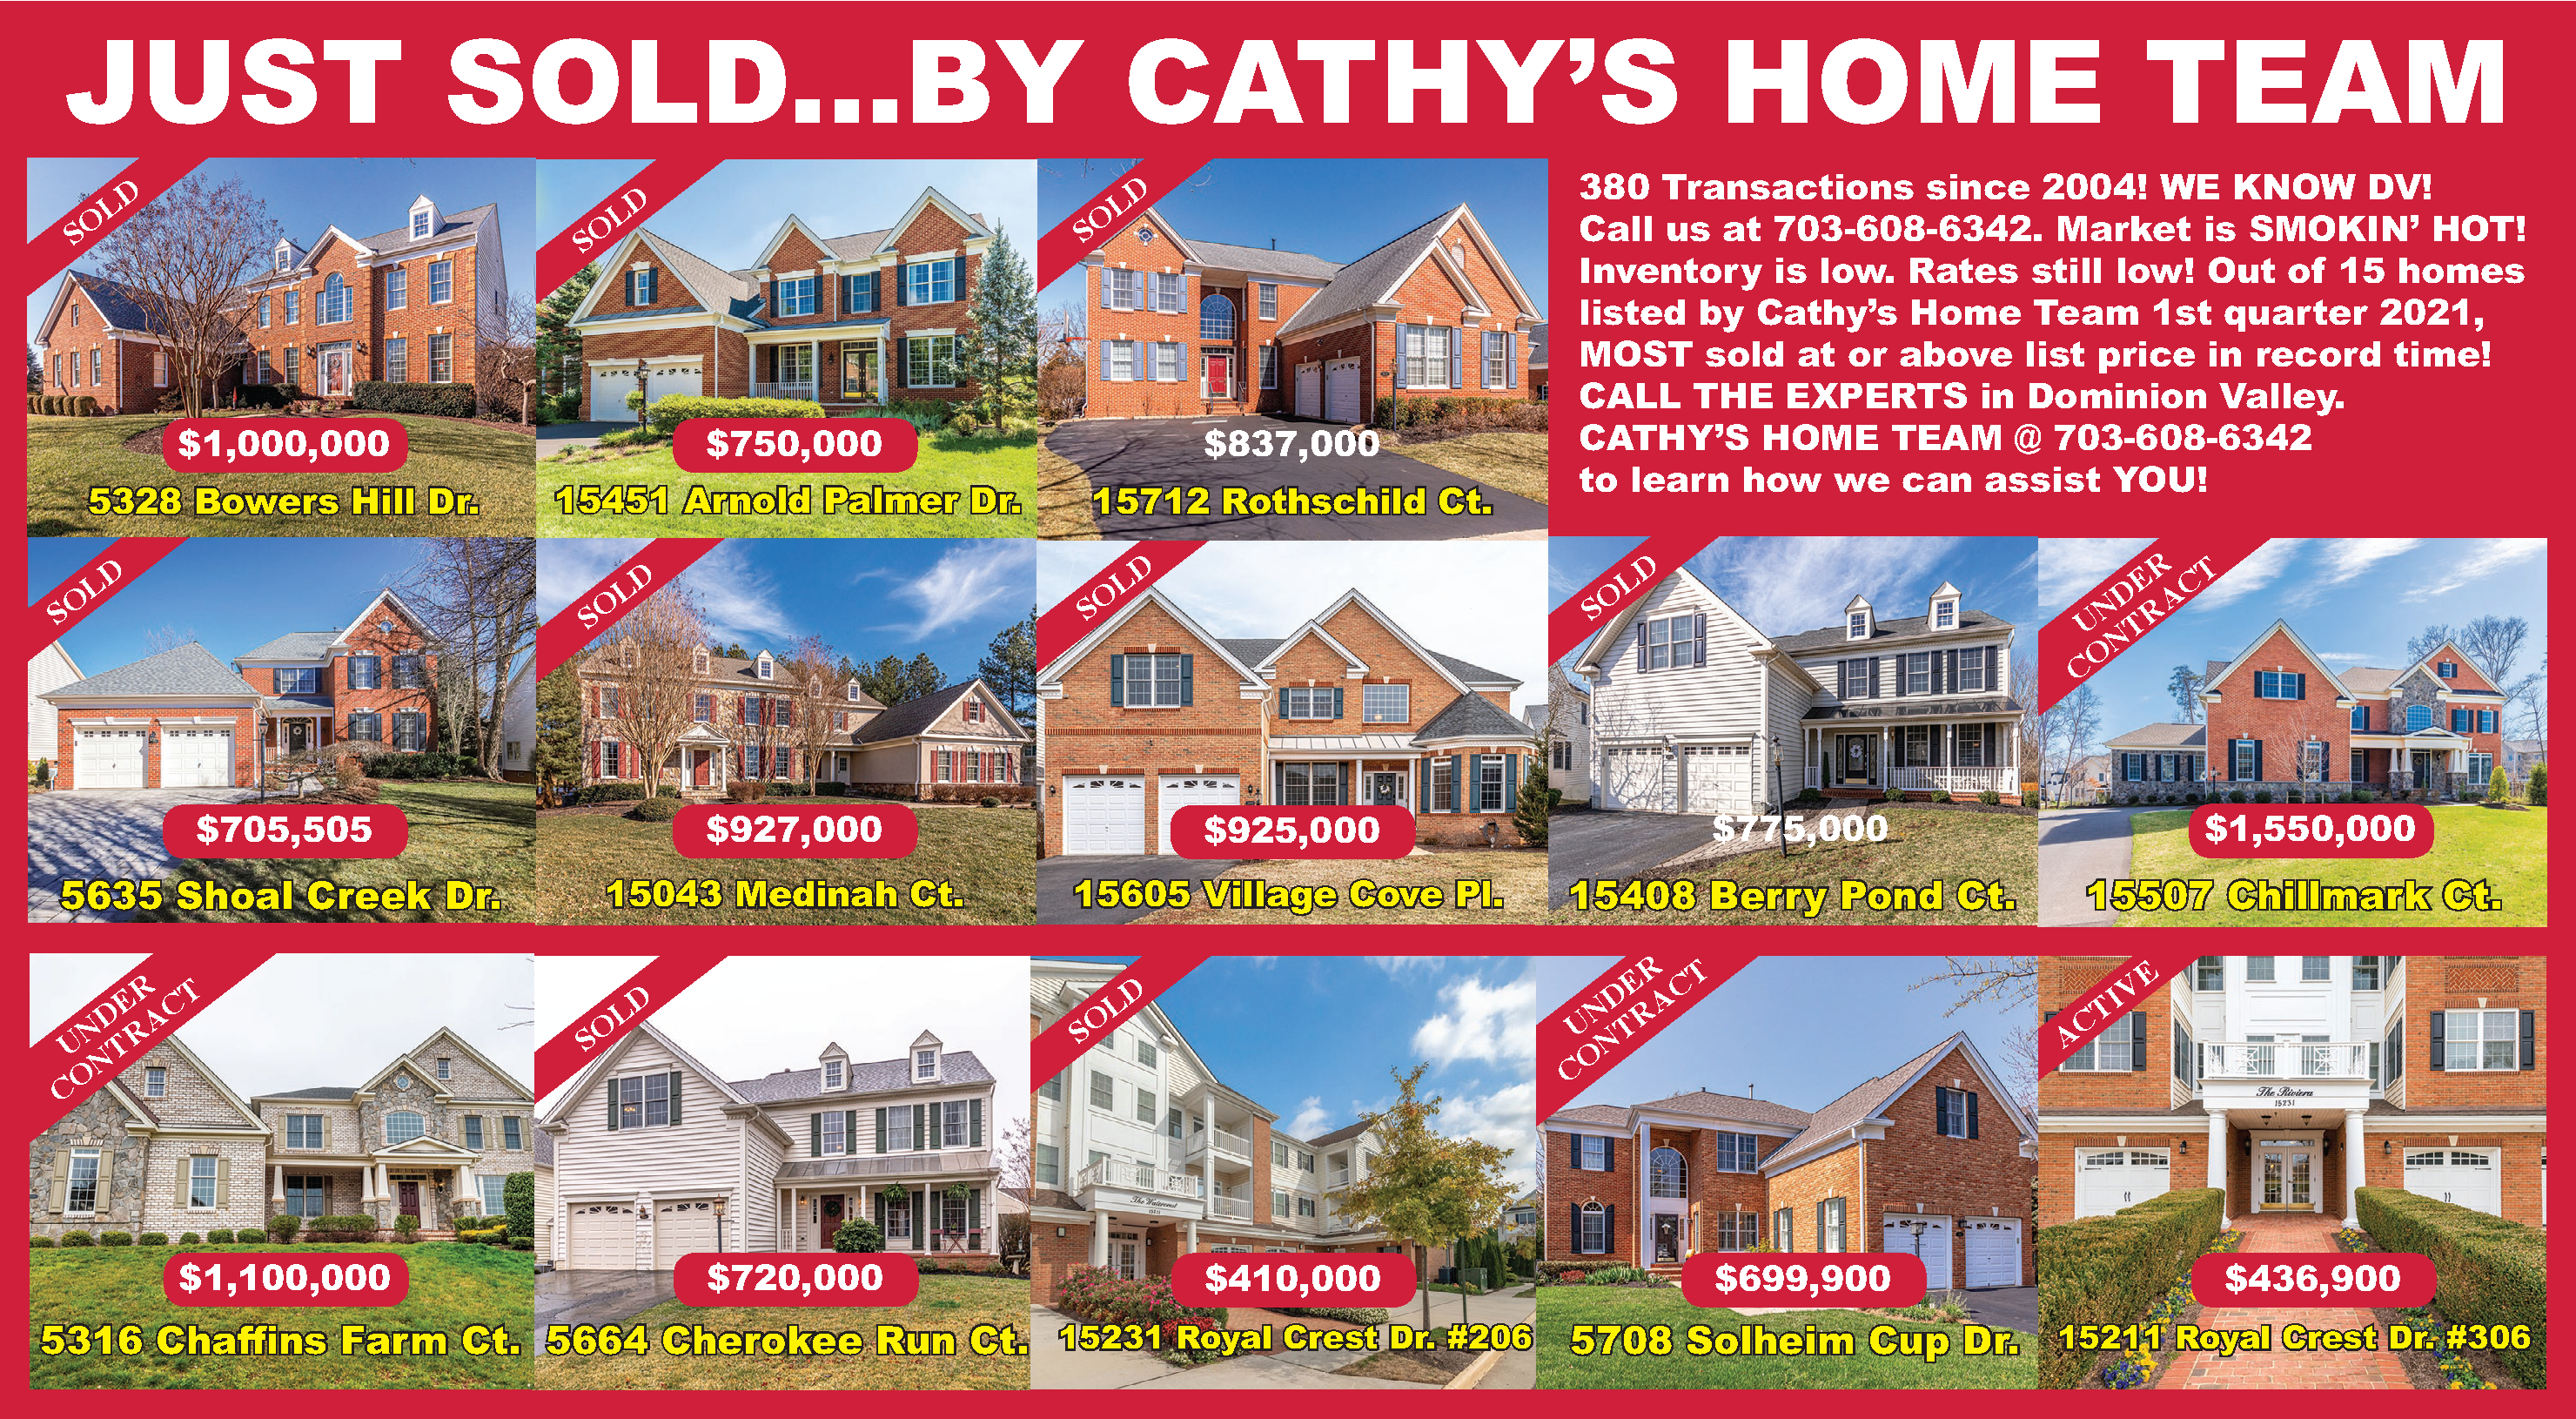 Cathy's Home Team 2021 Sales